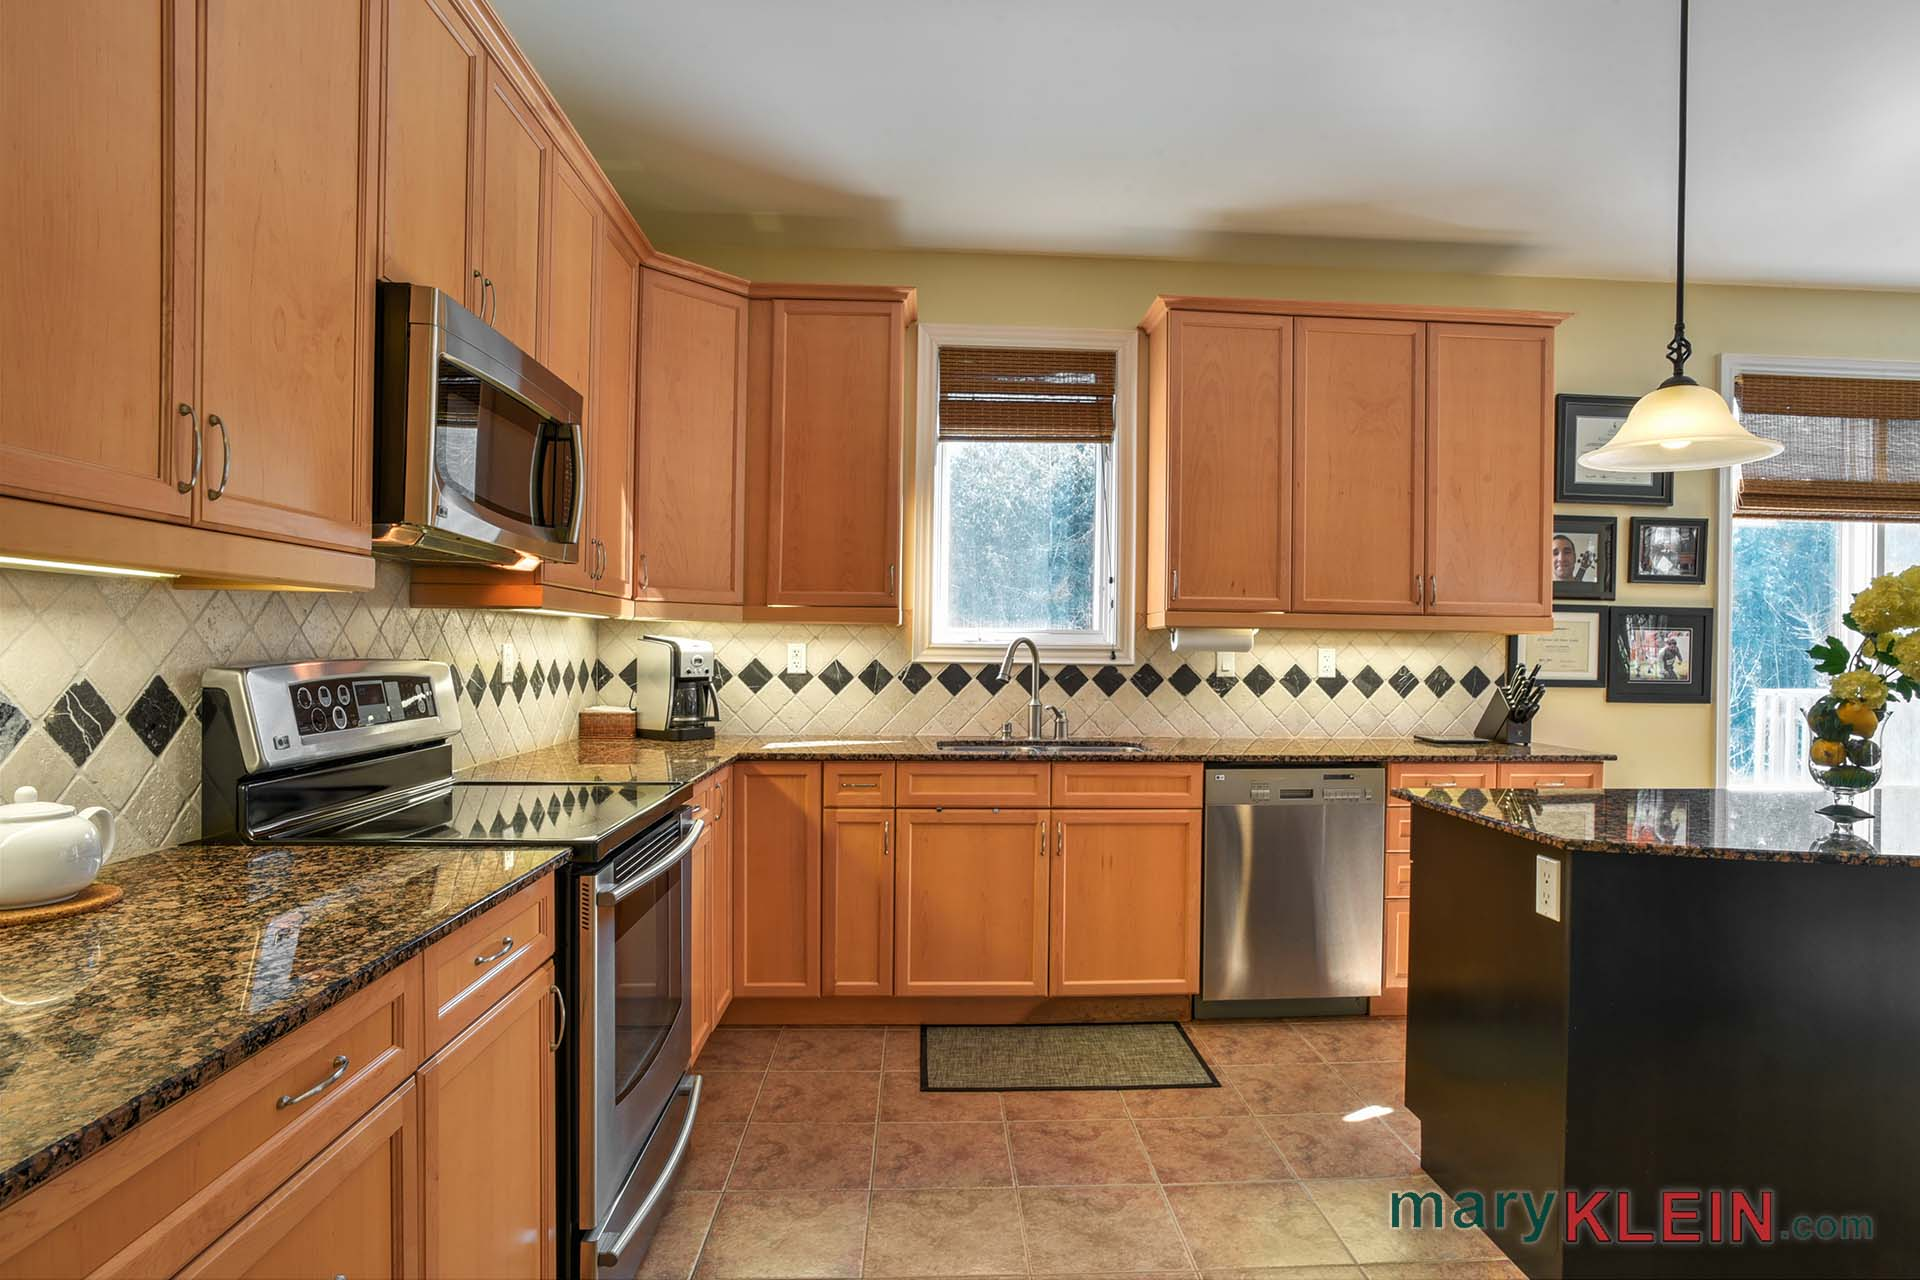 stainless steel appliances, lg, stone backsplash